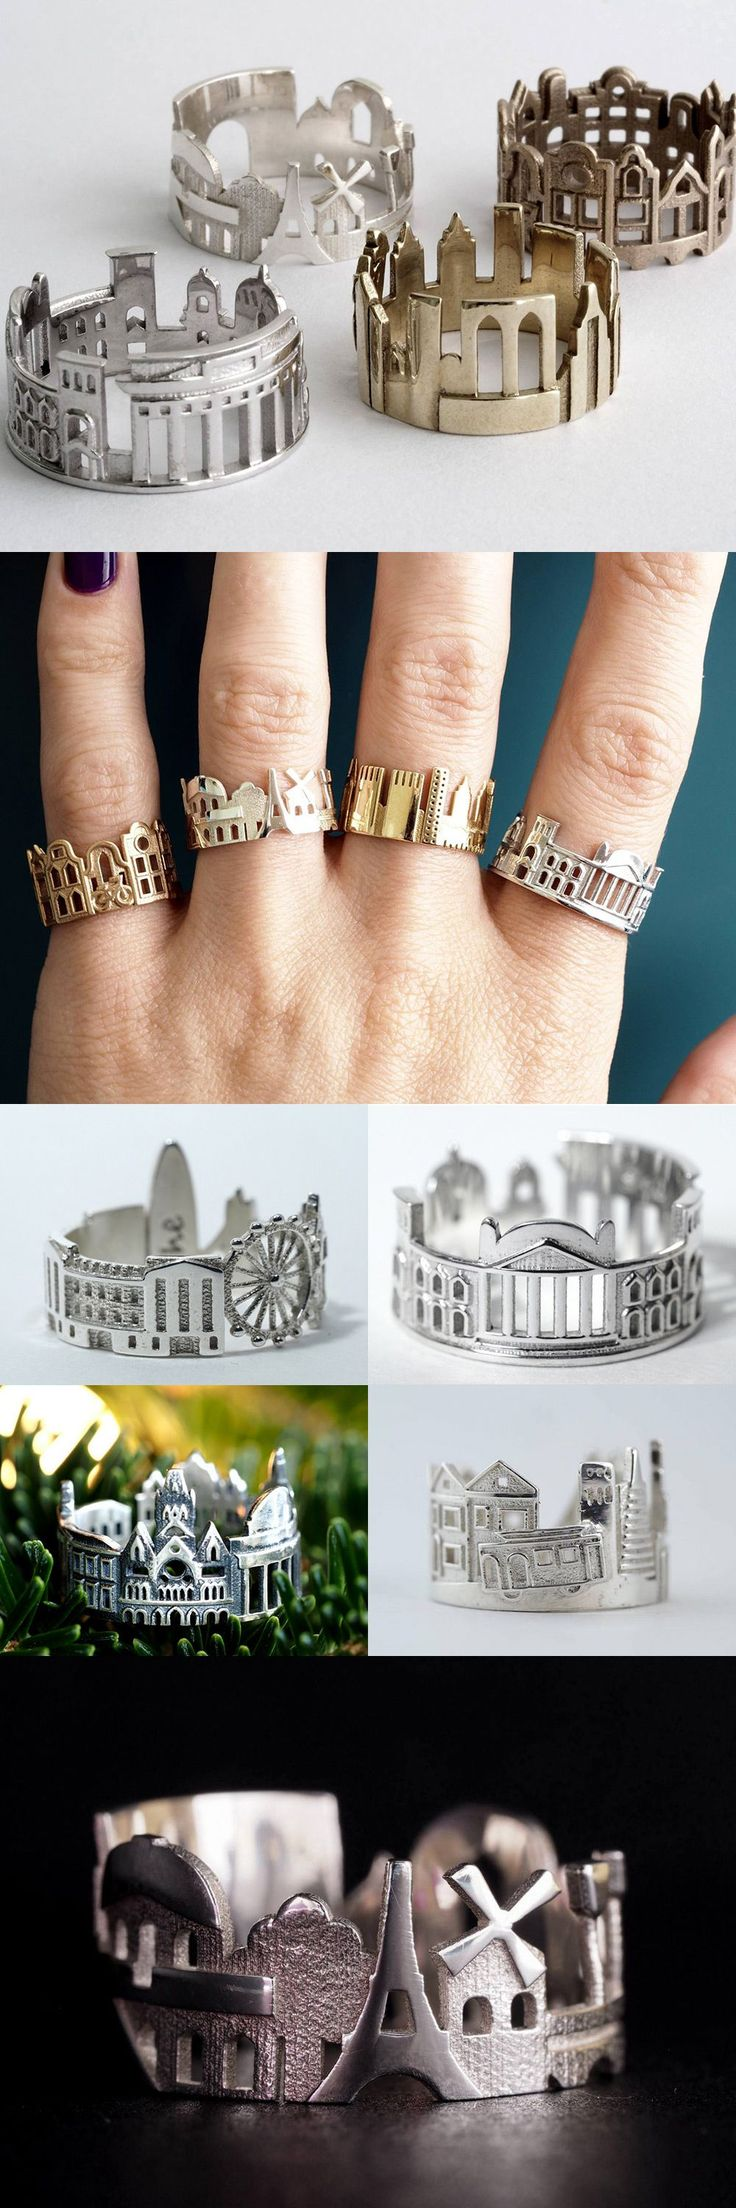 http://rubies.work/0364-sapphire-ring/ Cityscape Rings Feature Architectural Highlights of Iconic Cities